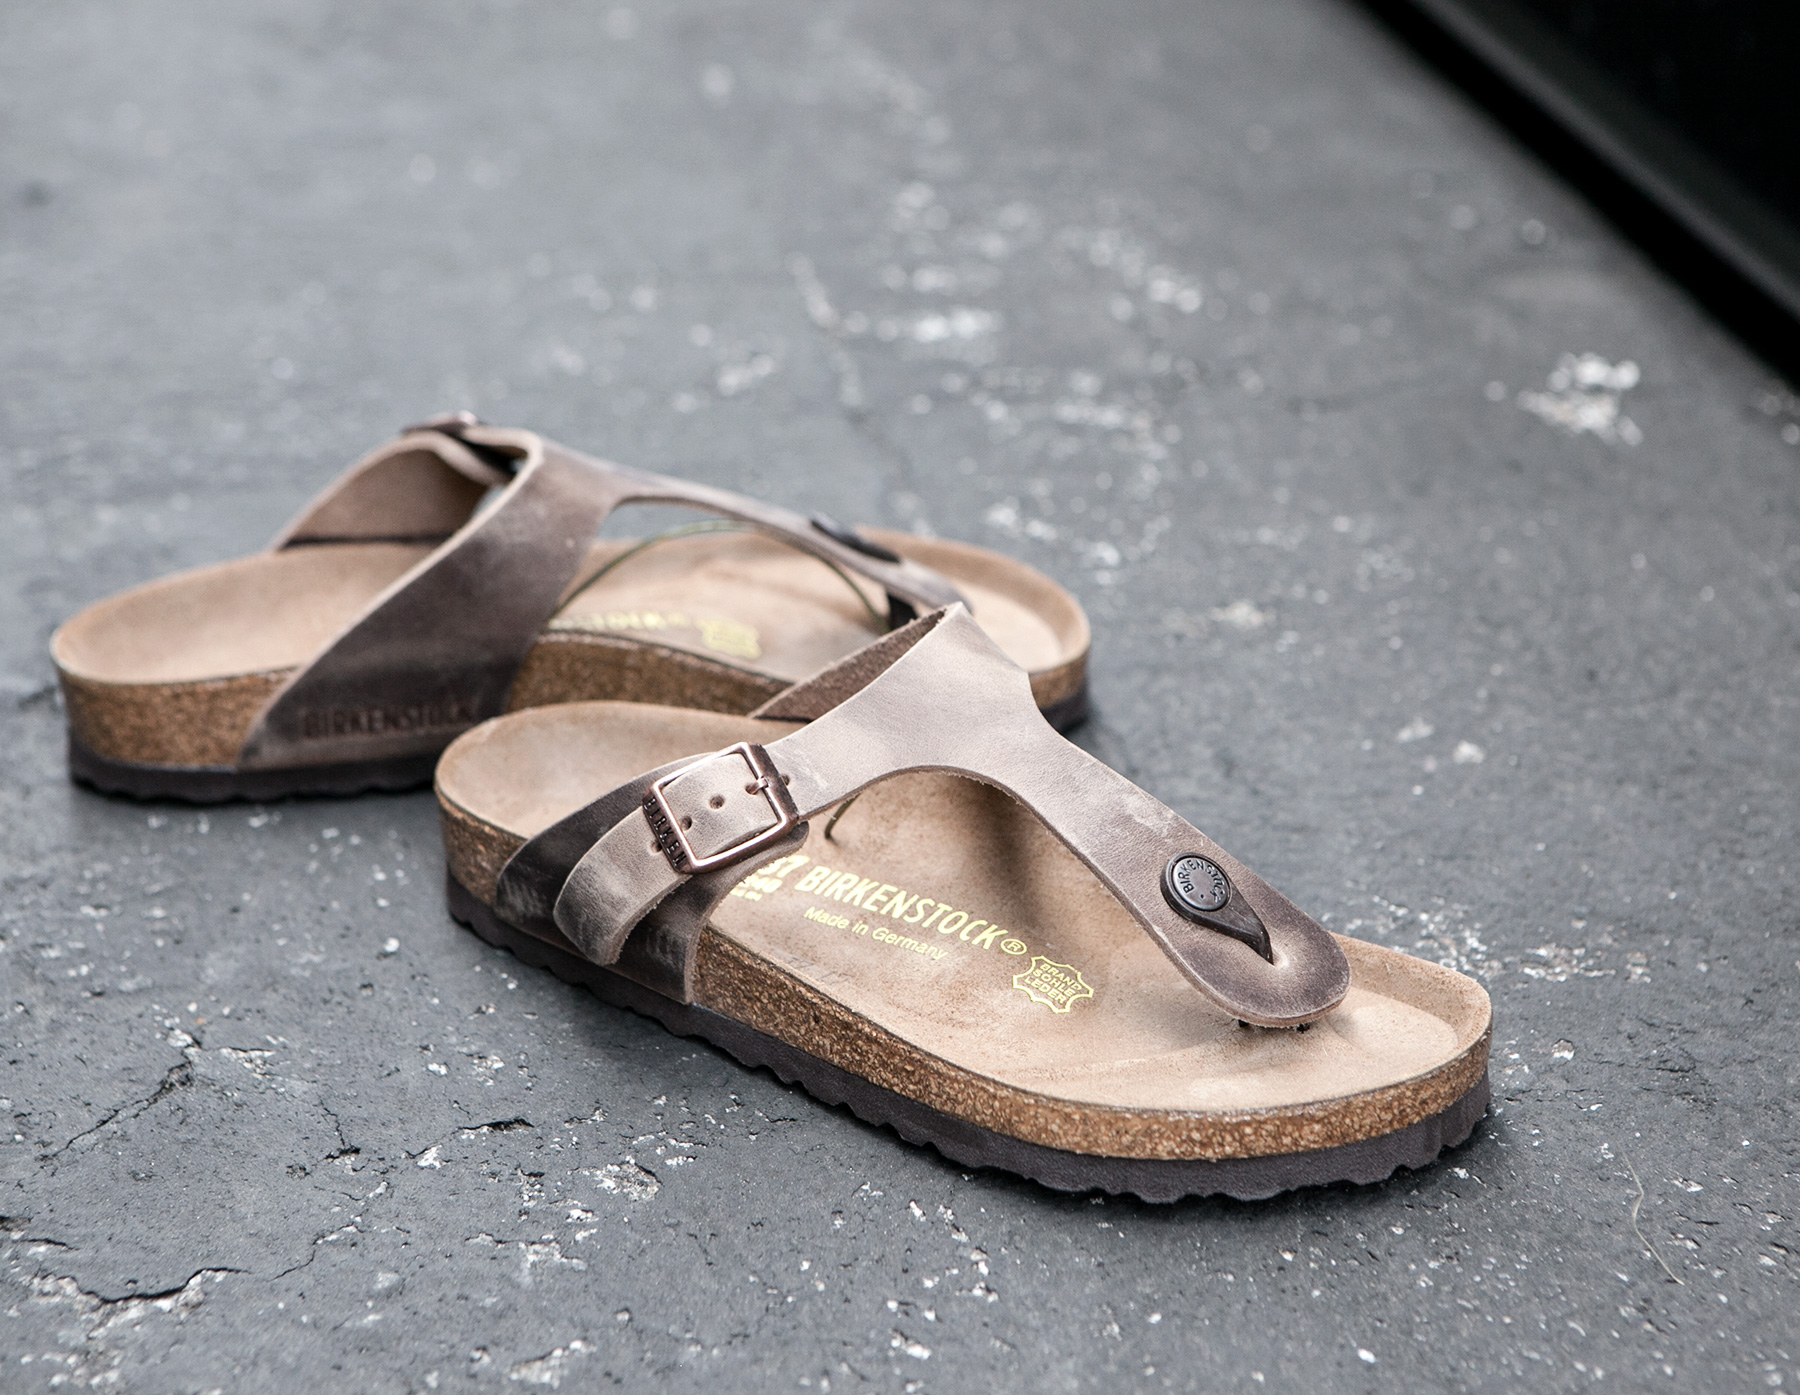 ebf4e4988a8 Lyst - James Perse Birkenstock Womens Gizeh Oiled Leather Sandal in Gray